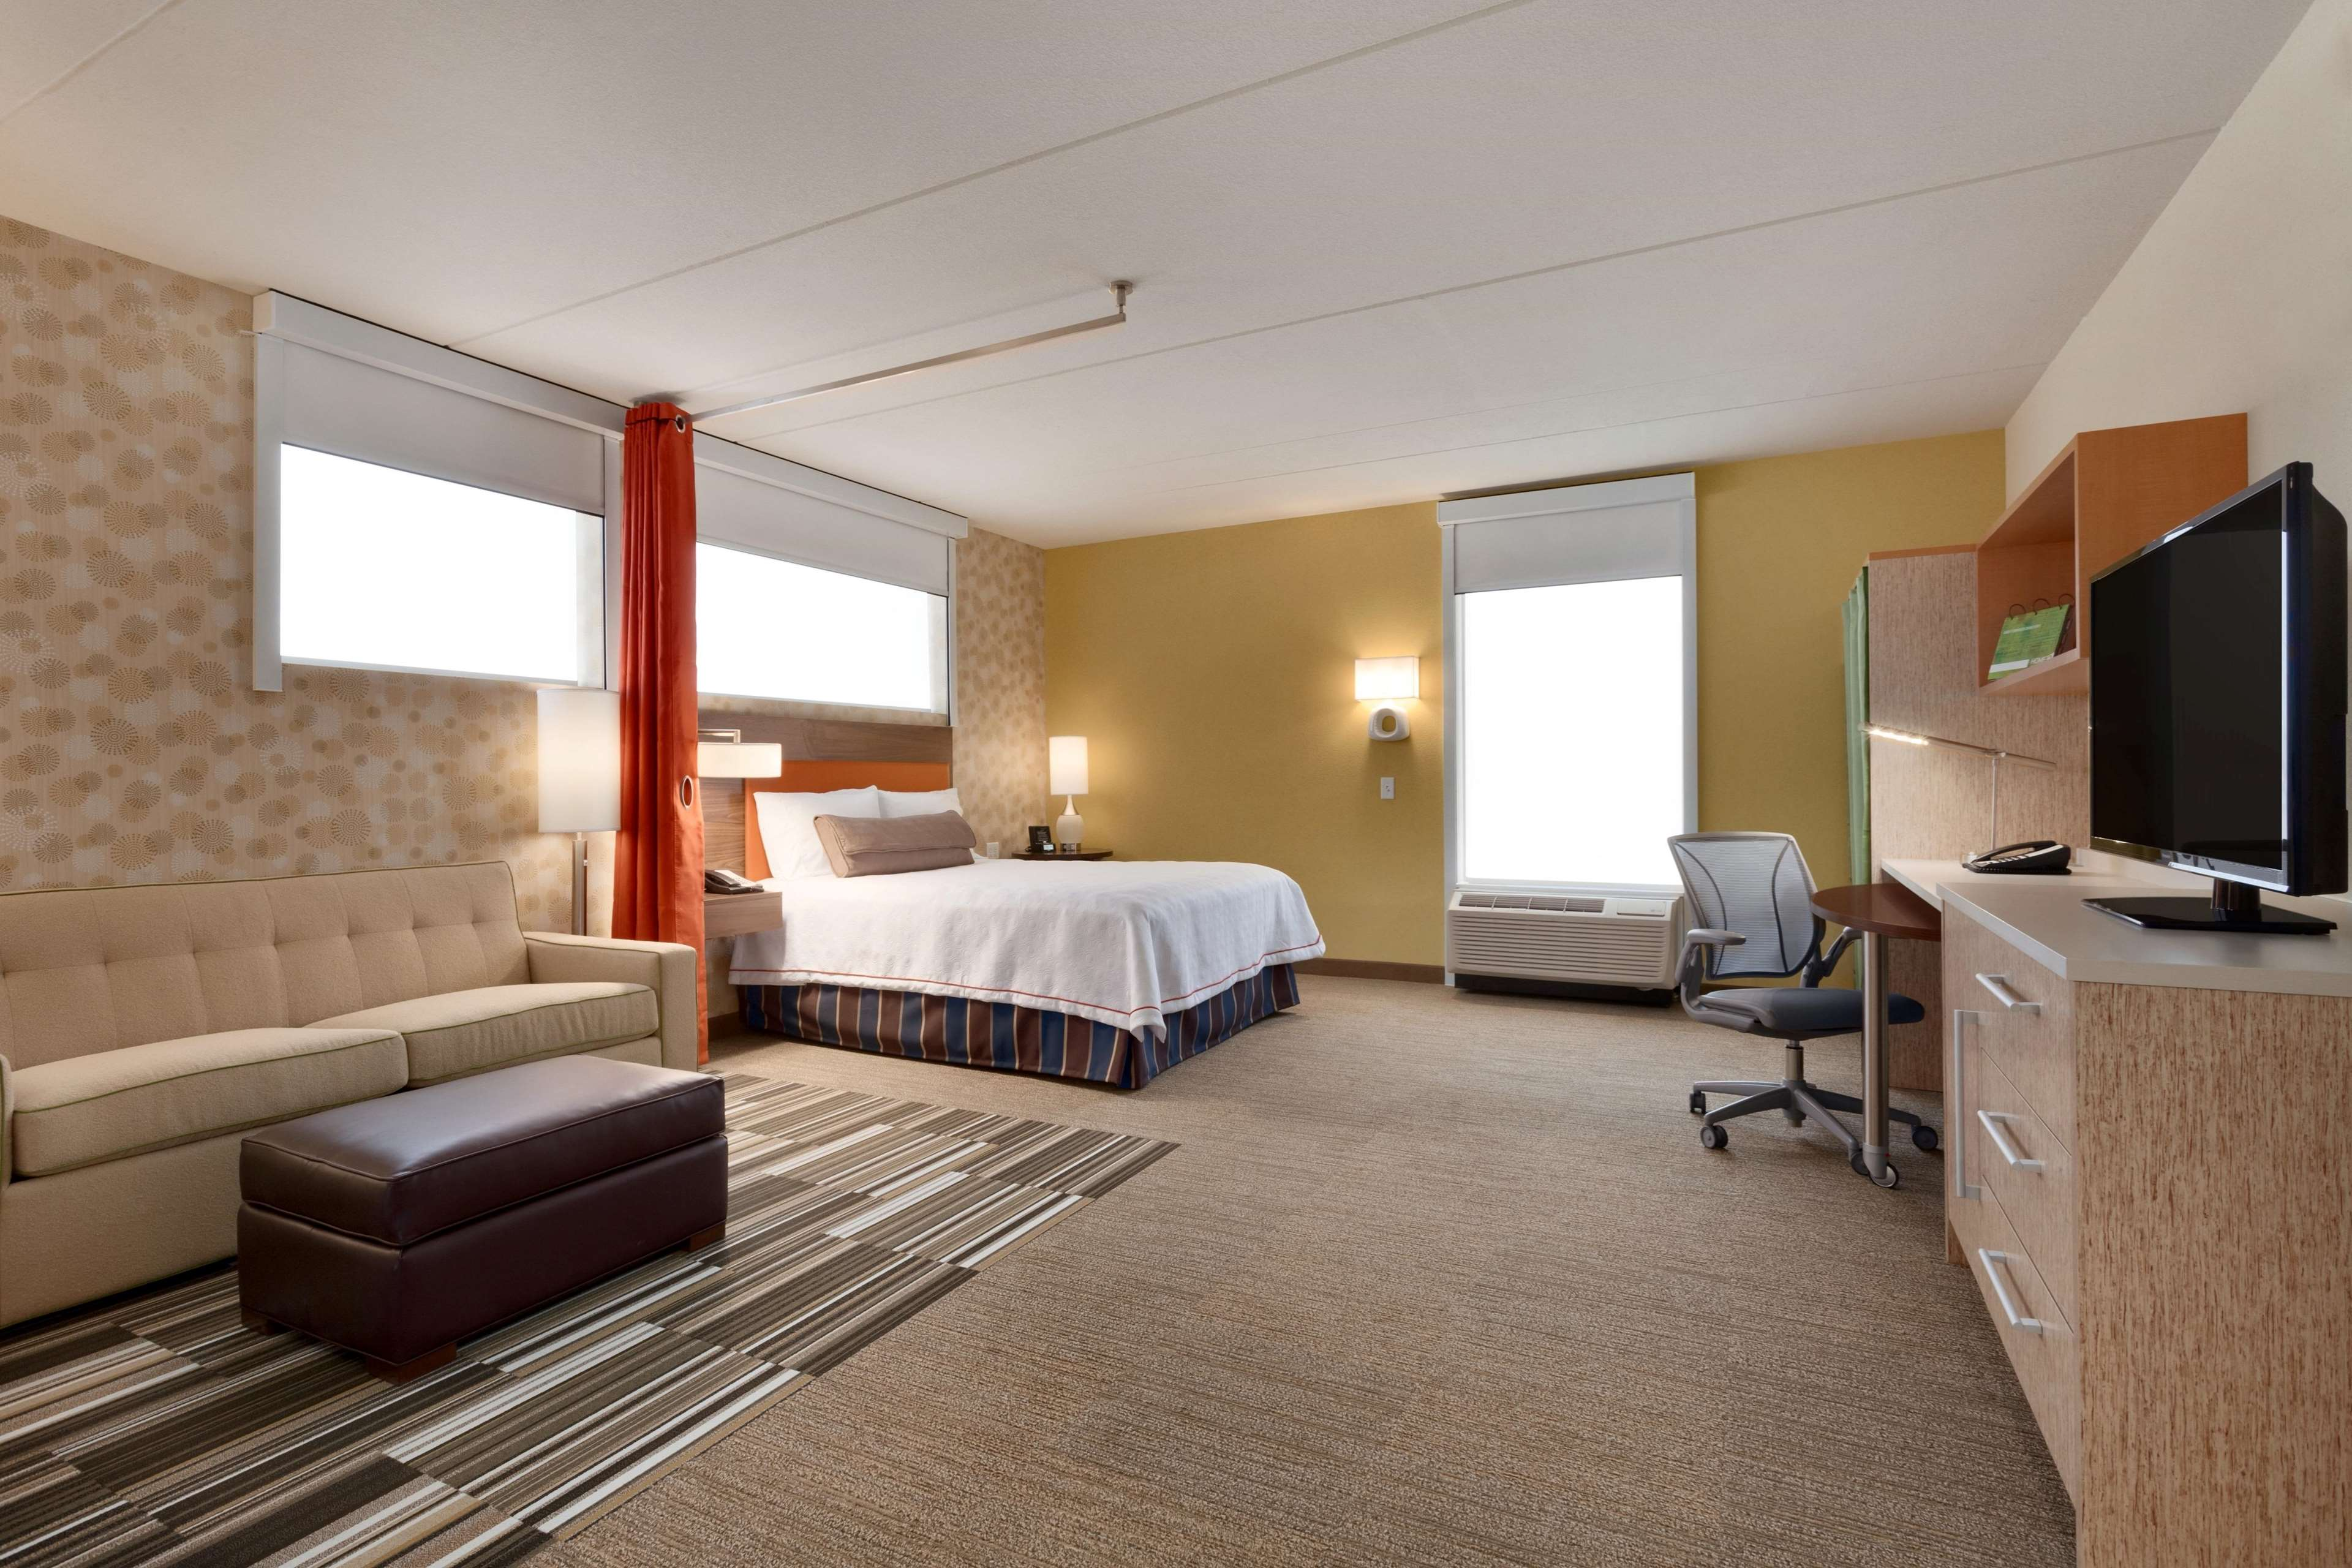 Home2 Suites by Hilton Baltimore / Aberdeen, MD image 12